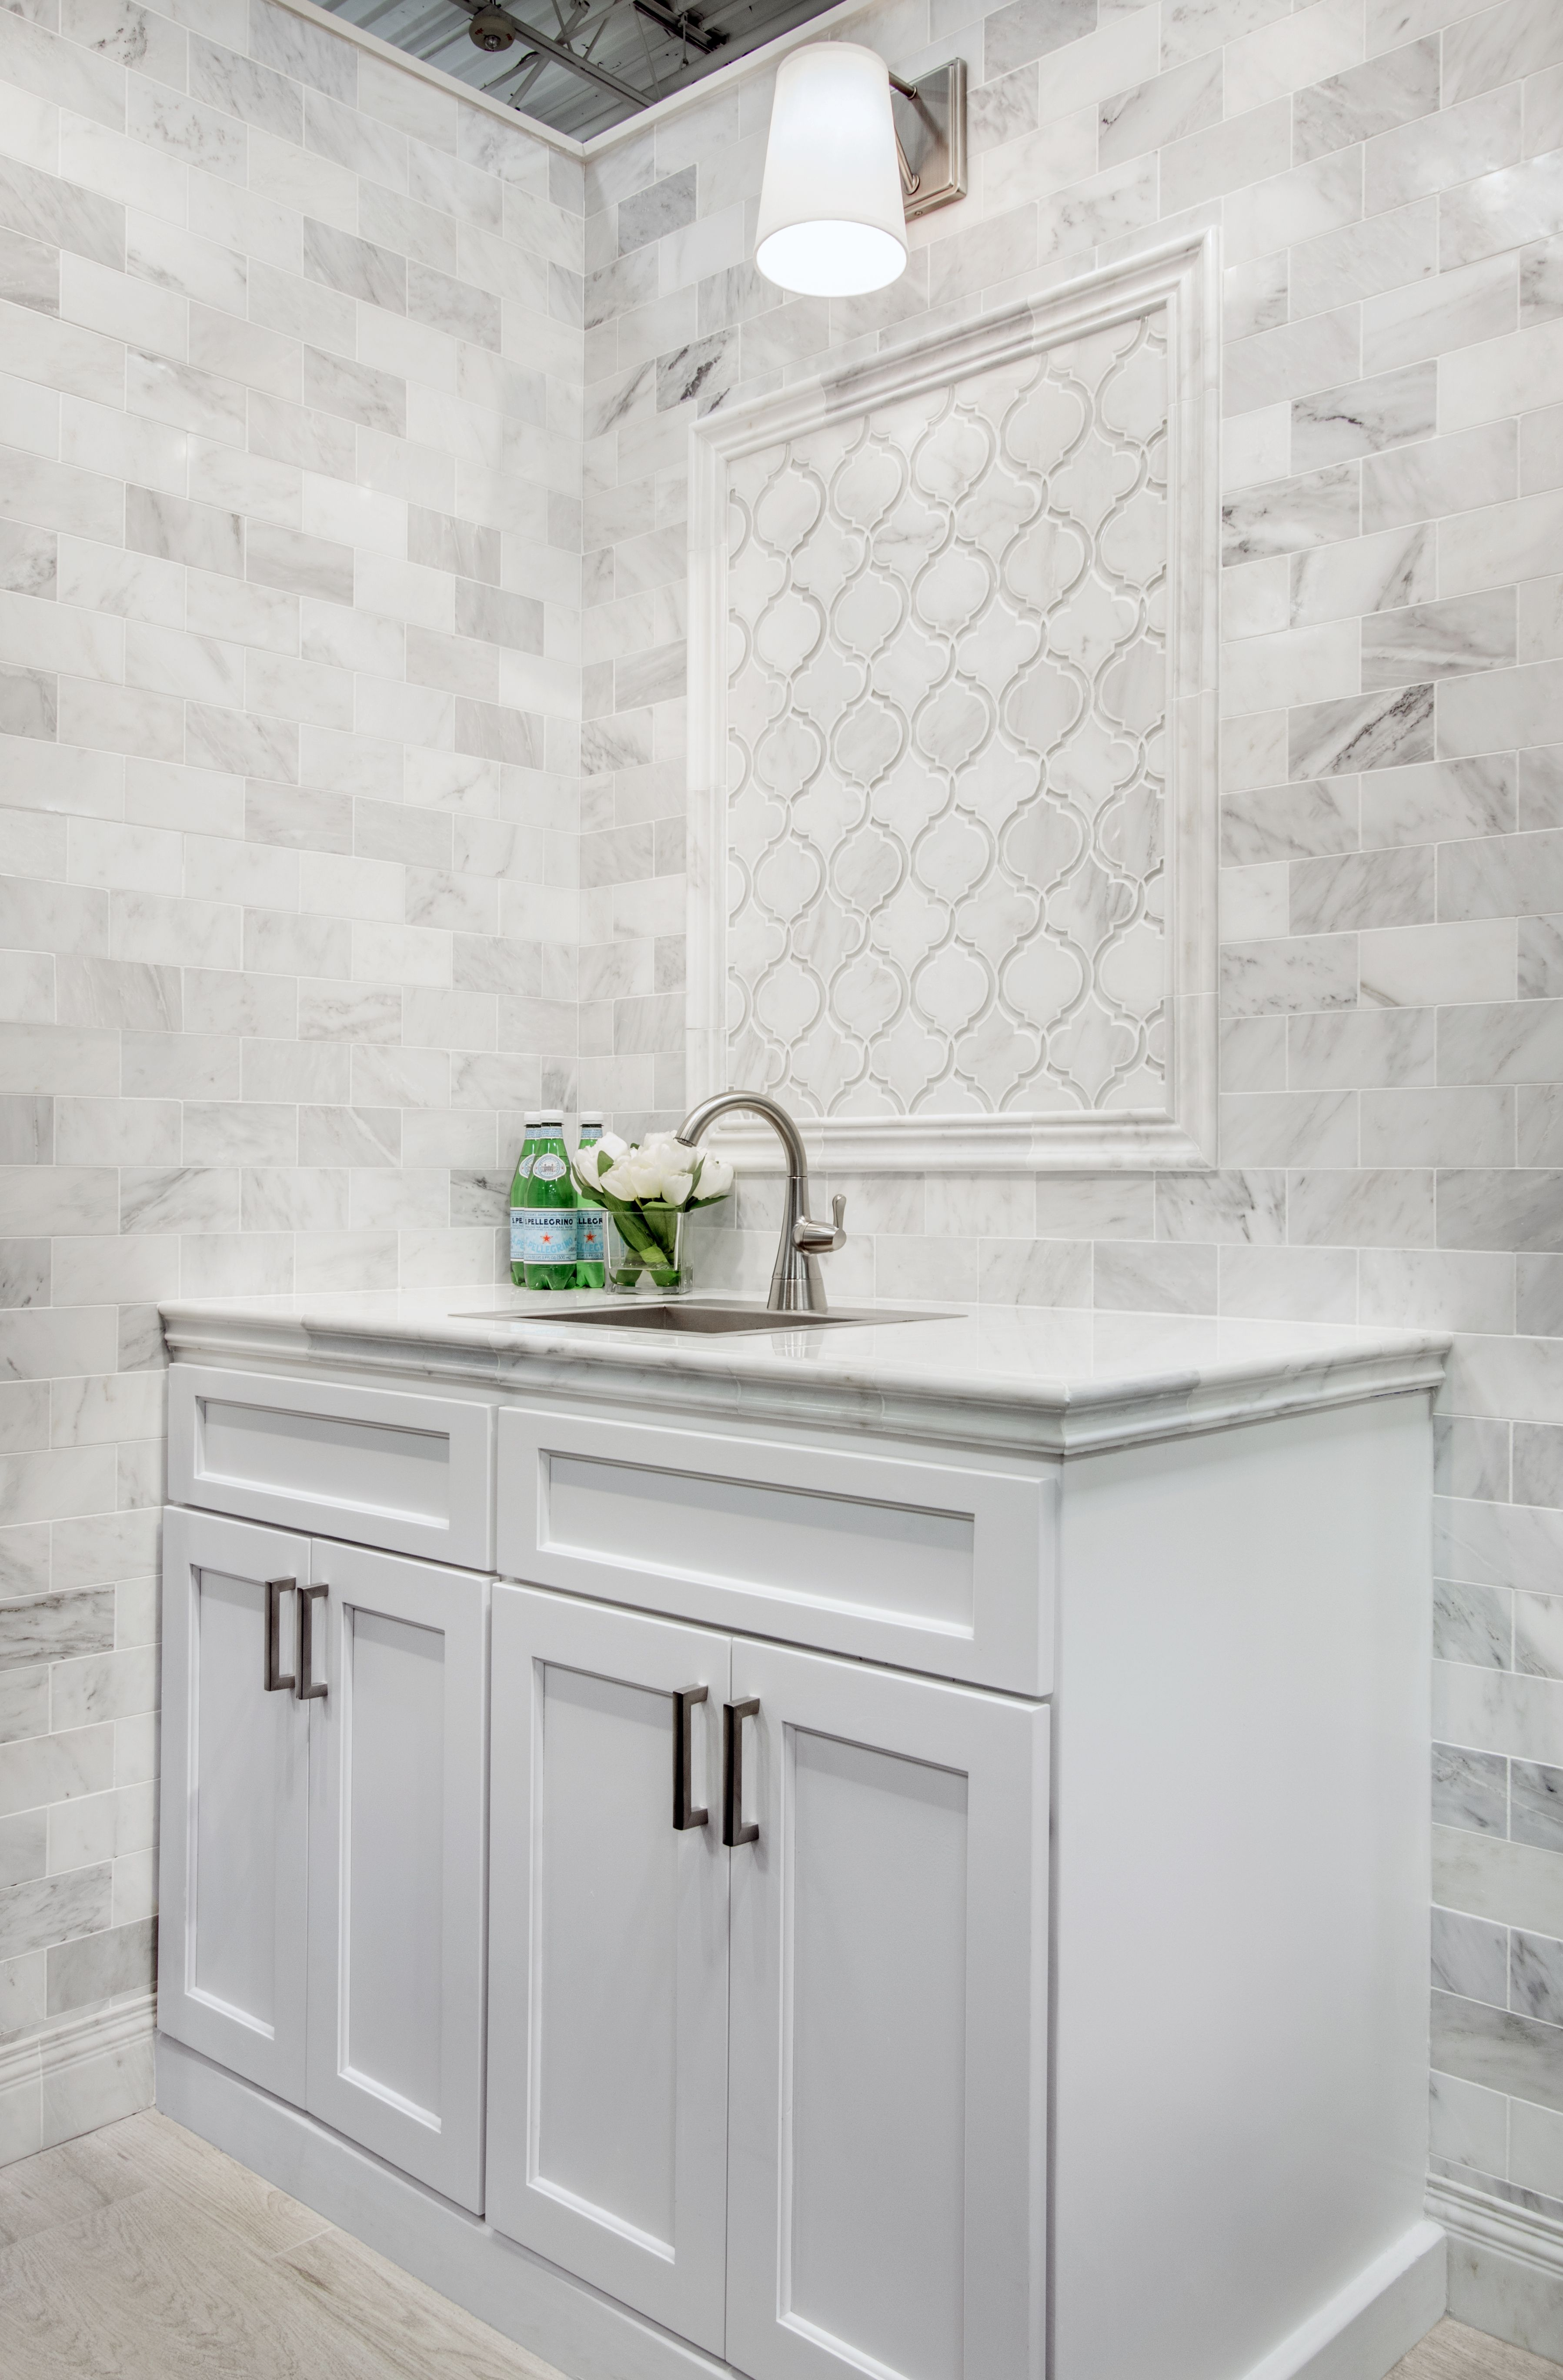 With a sleek glass tile border around each shape, this wavy ...